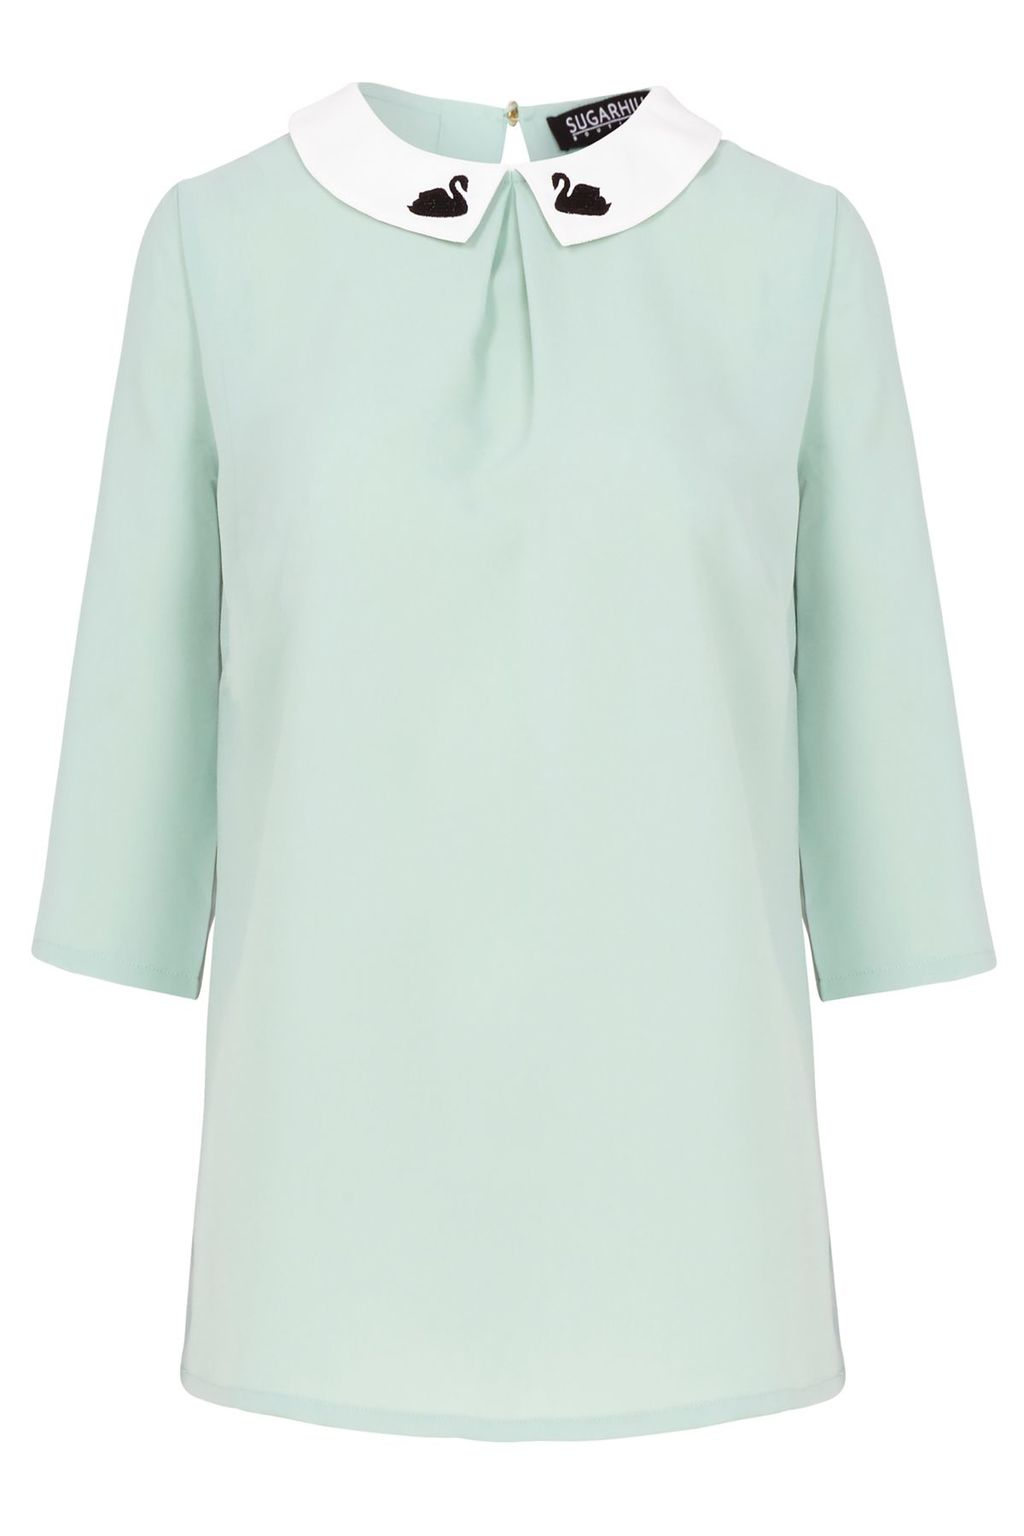 Nala Swan Embro Top, Green - secondary colour: white; predominant colour: pistachio; occasions: casual, creative work; length: standard; style: top; fibres: polyester/polyamide - 100%; fit: straight cut; neckline: no opening/shirt collar/peter pan; back detail: keyhole/peephole detail at back; sleeve length: 3/4 length; sleeve style: standard; texture group: crepes; pattern type: fabric; pattern: colourblock; embellishment: embroidered; season: s/s 2016; wardrobe: highlight